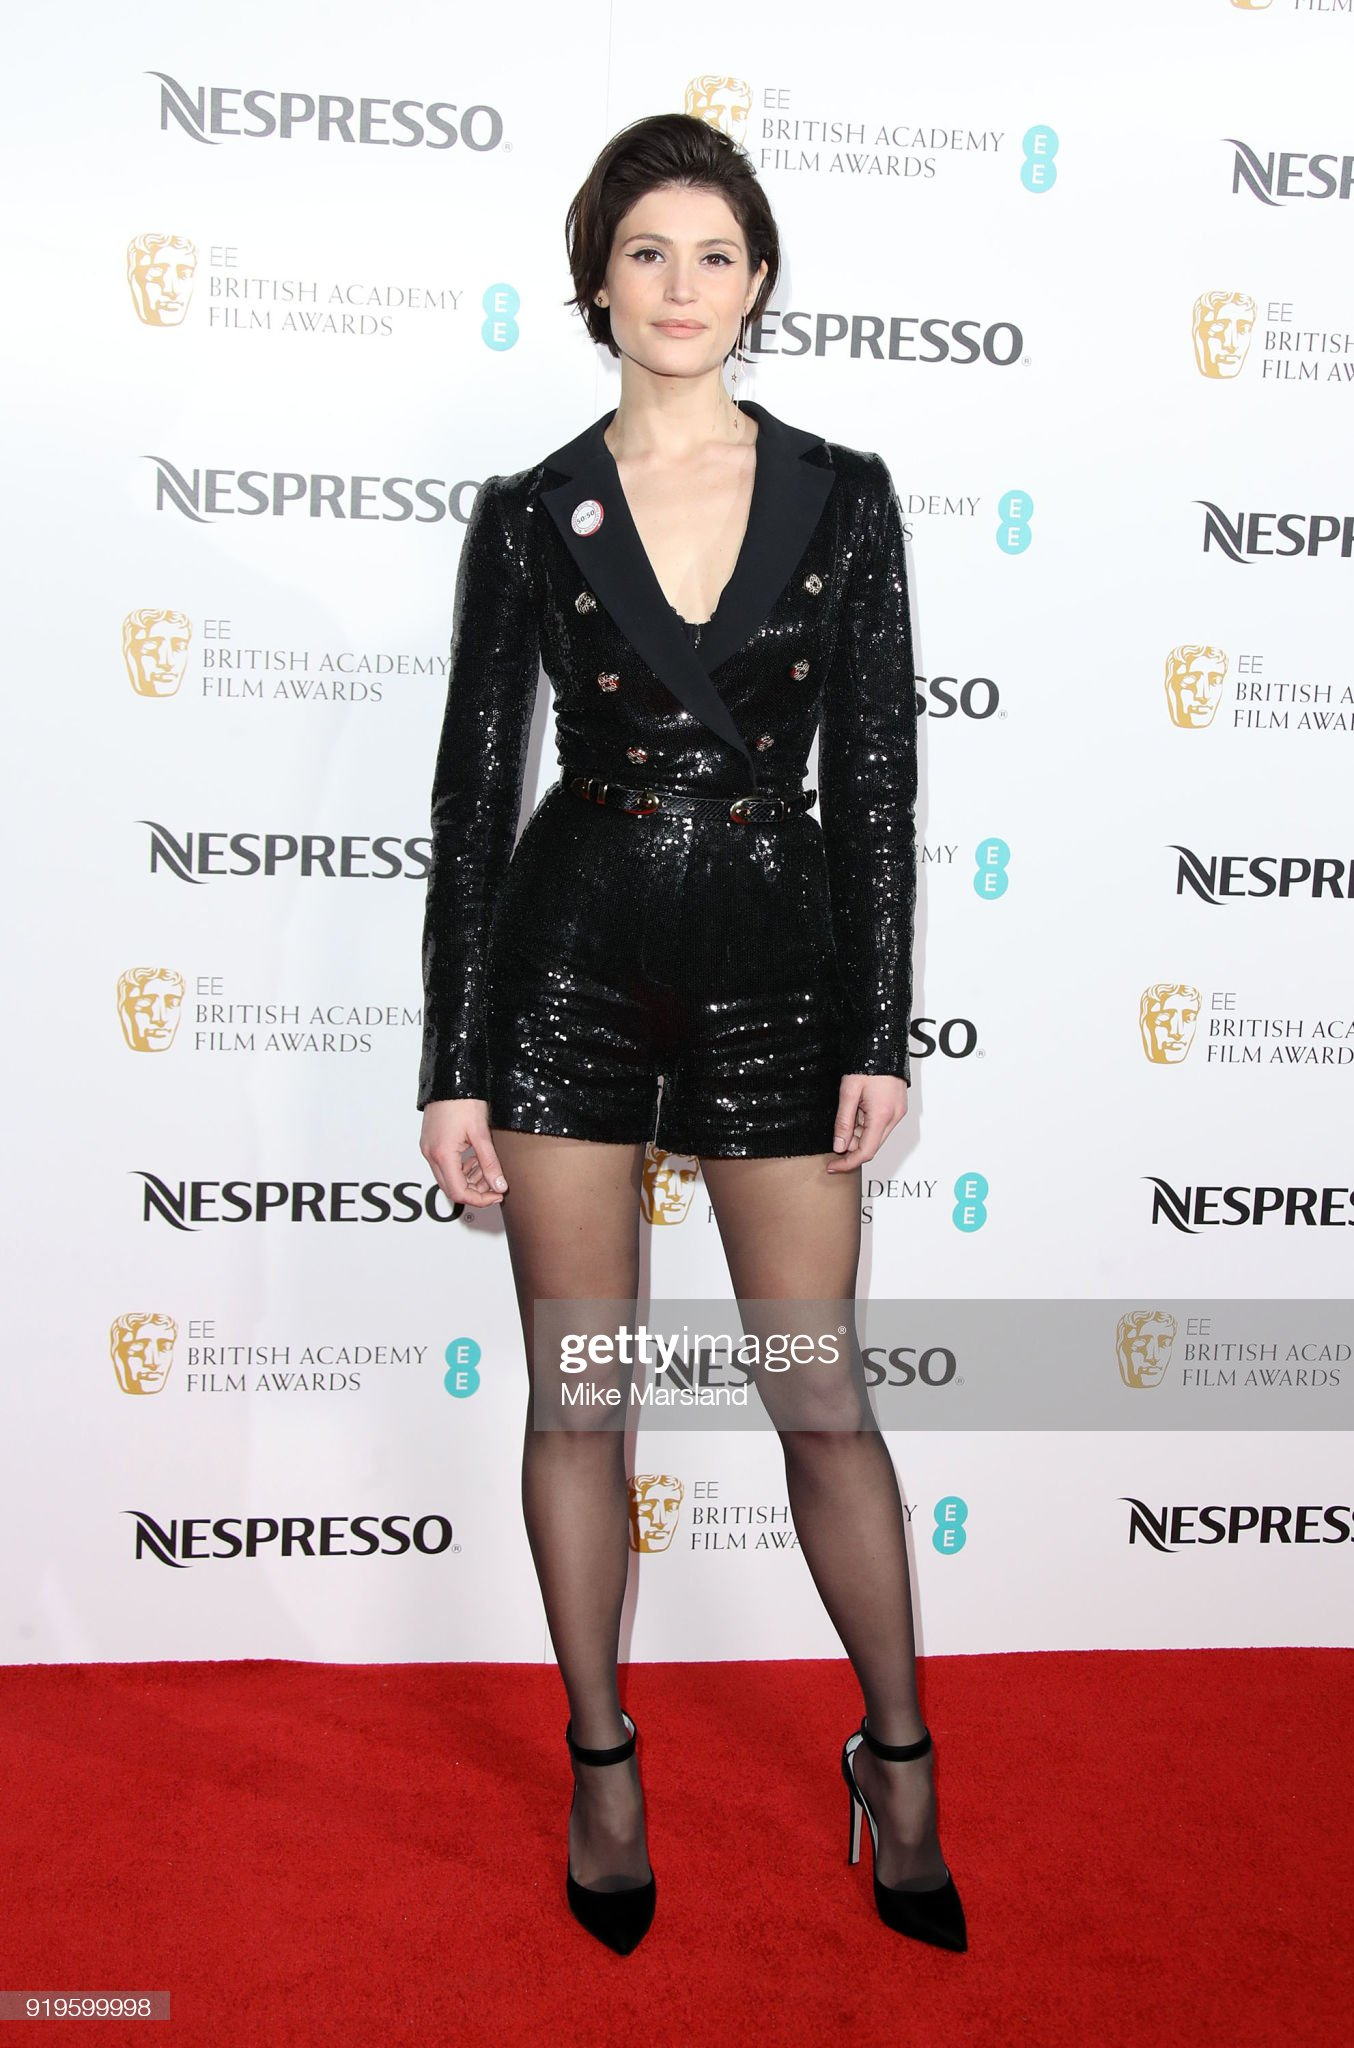 gemma-arterton-attends-the-ee-british-academy-film-awards-nominees-picture-id919599998